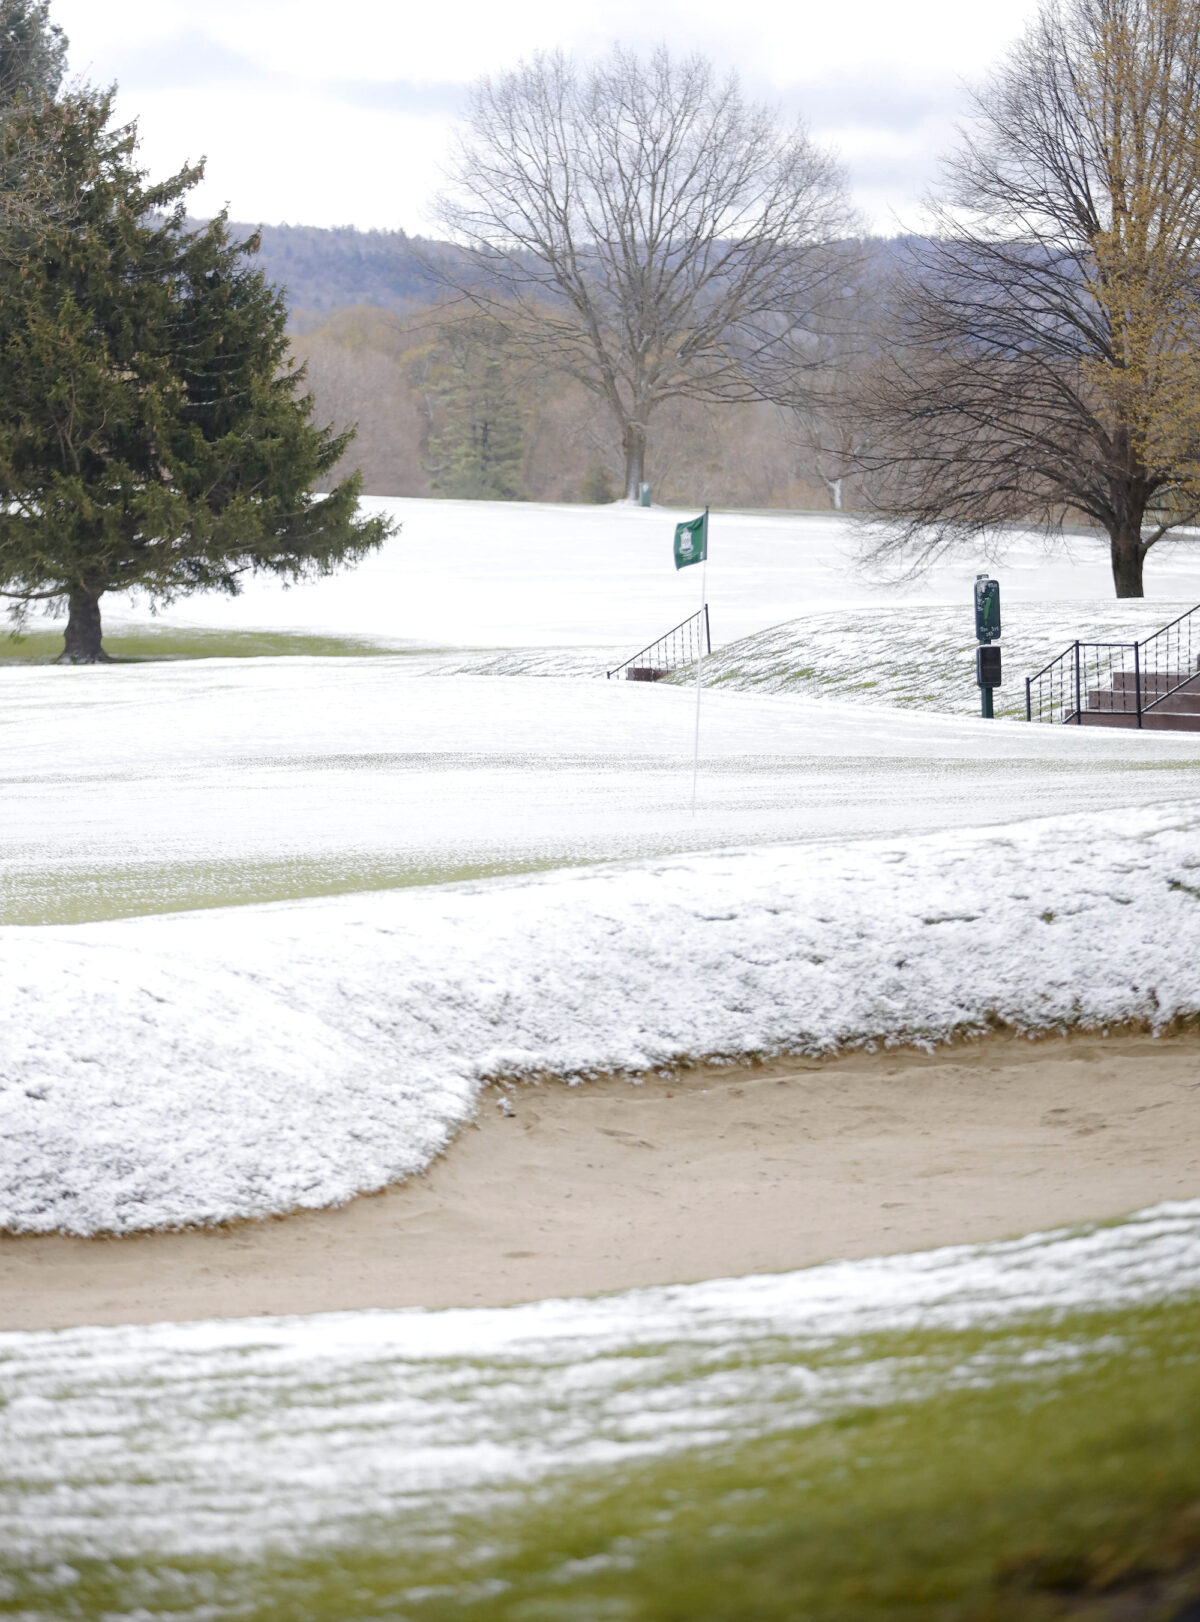 The greens and fairways are covered in snow